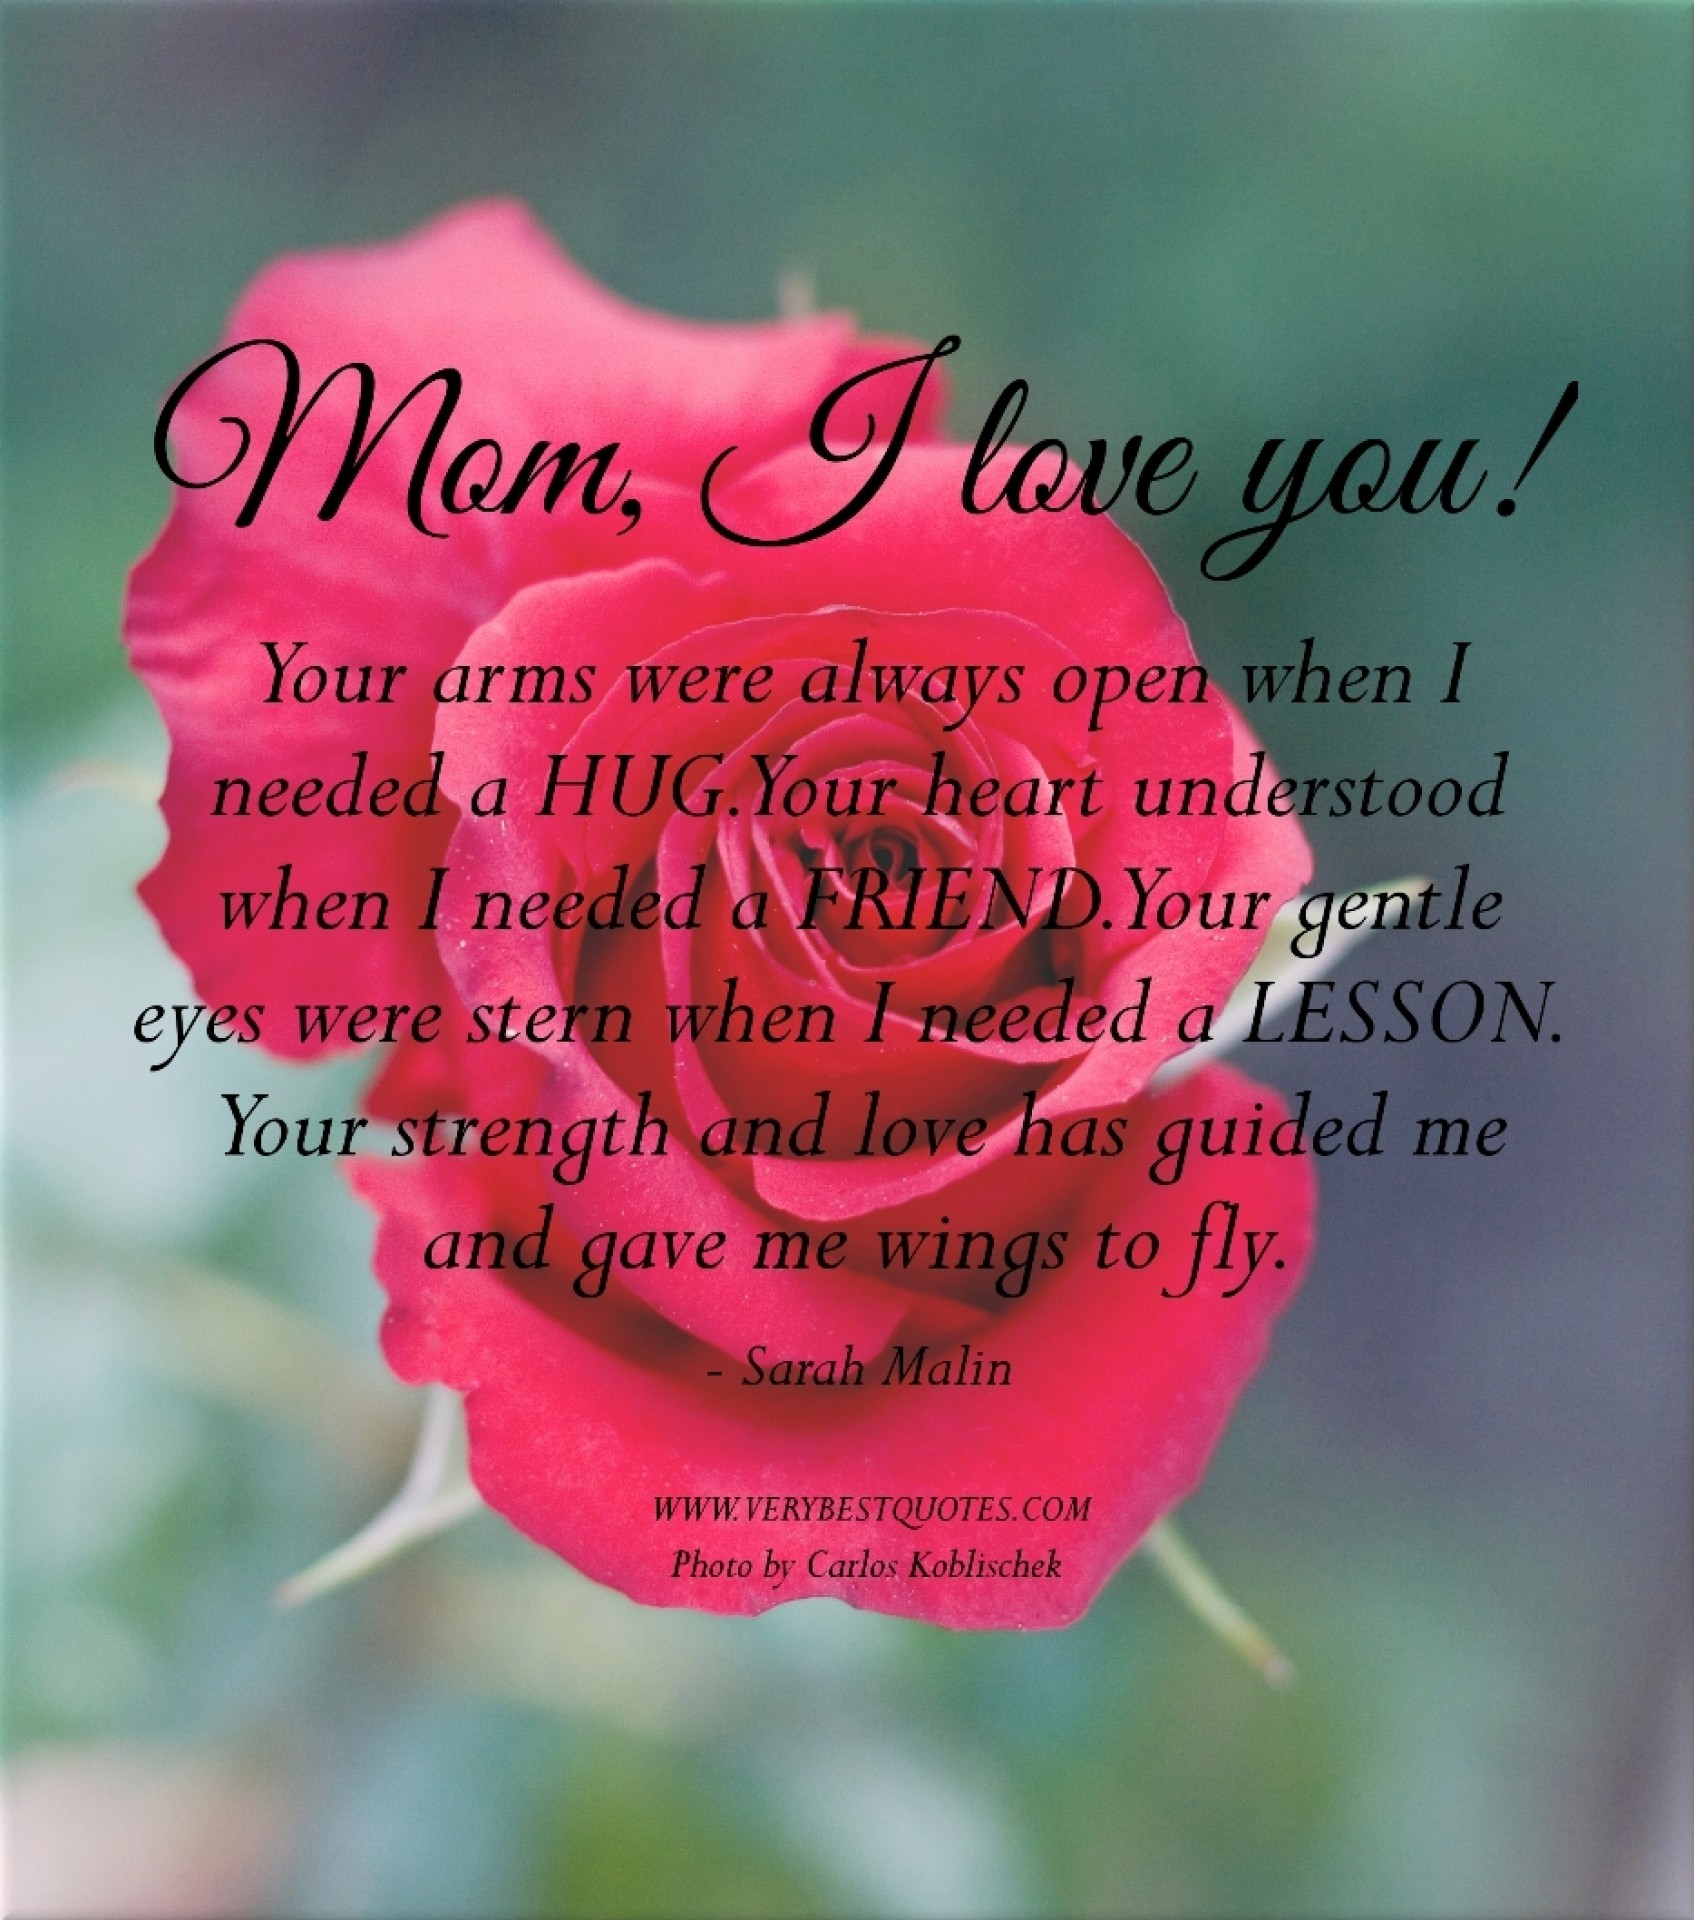 I Love You Mom Quotes Images Hd Ios 11 Wallpaper Love Mothers Day Quotes 1694x1920 Wallpaper Teahub Io